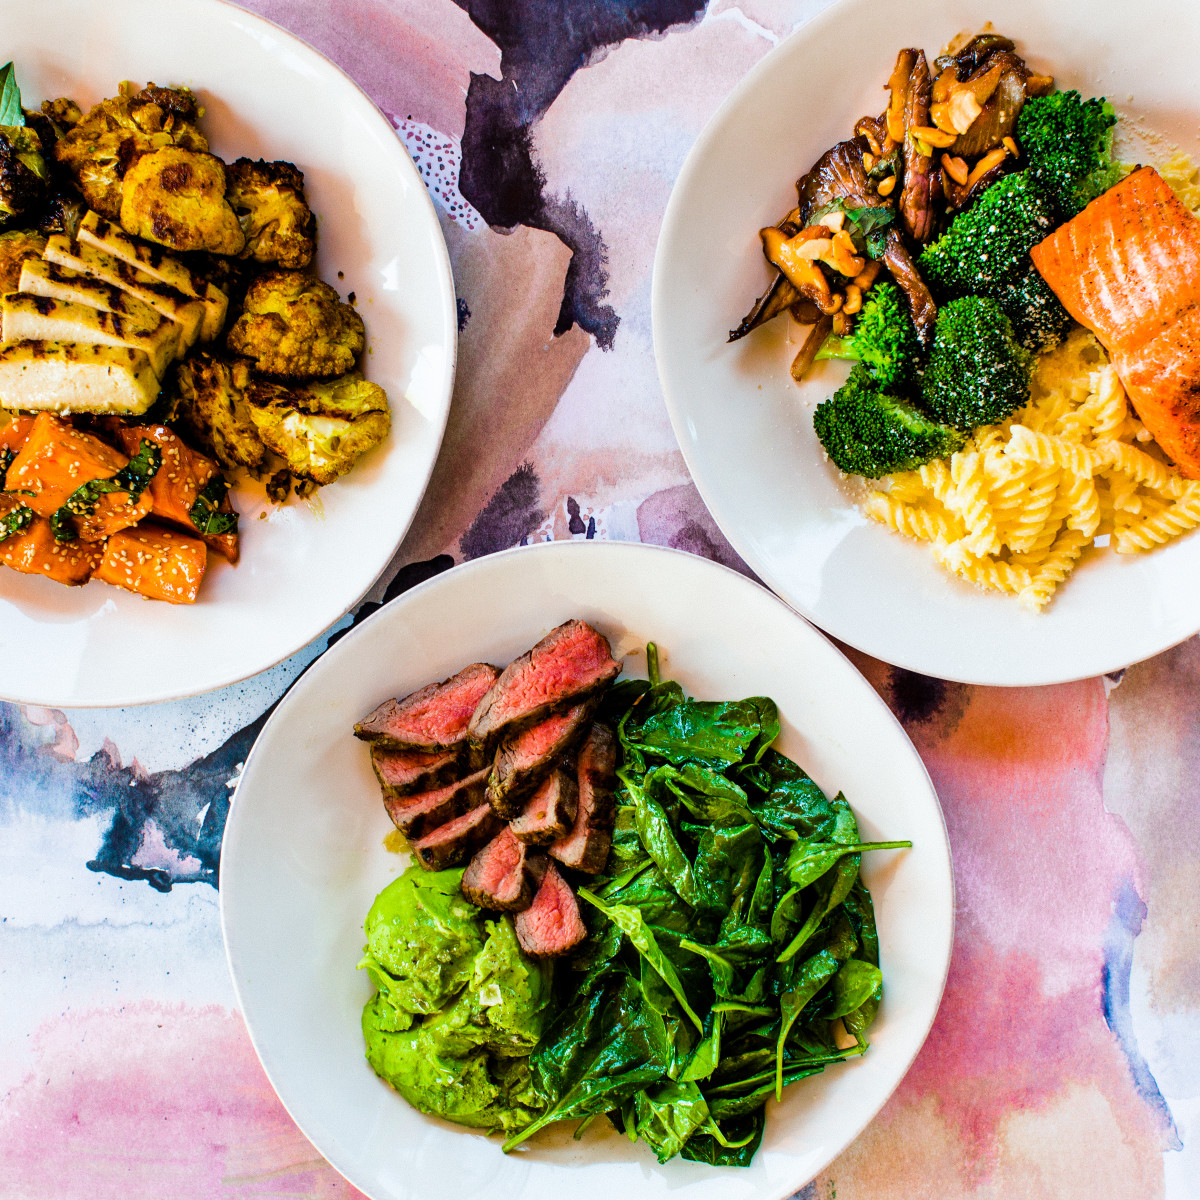 Healthy Eating Restaurant Picks The Heights For Third